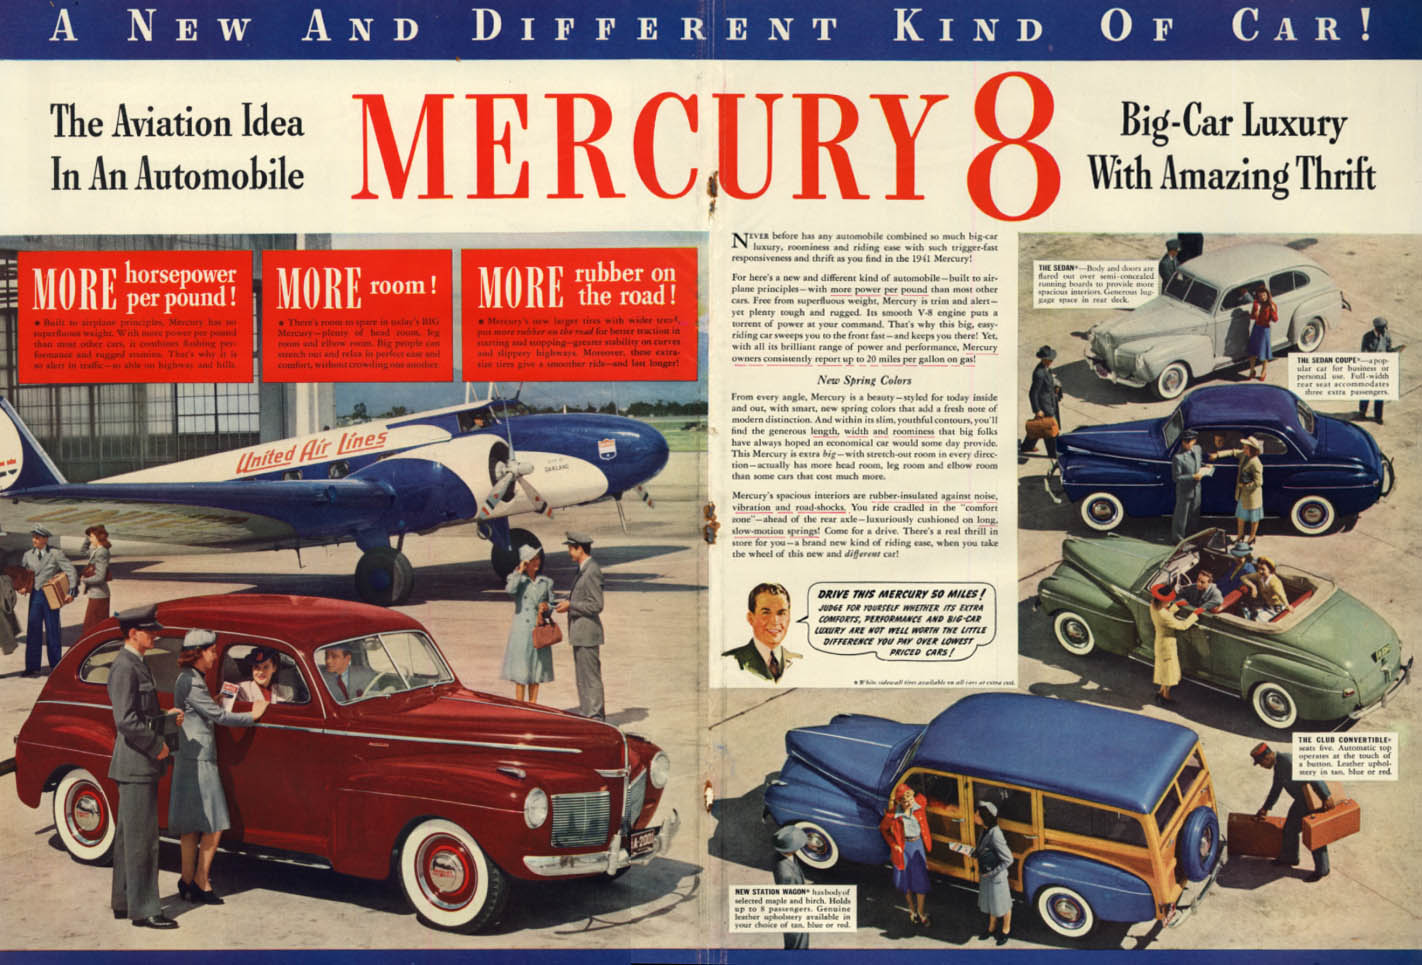 The Aviation Idea in the Mercury ad 1941 United Air Lines Boeing 247 L